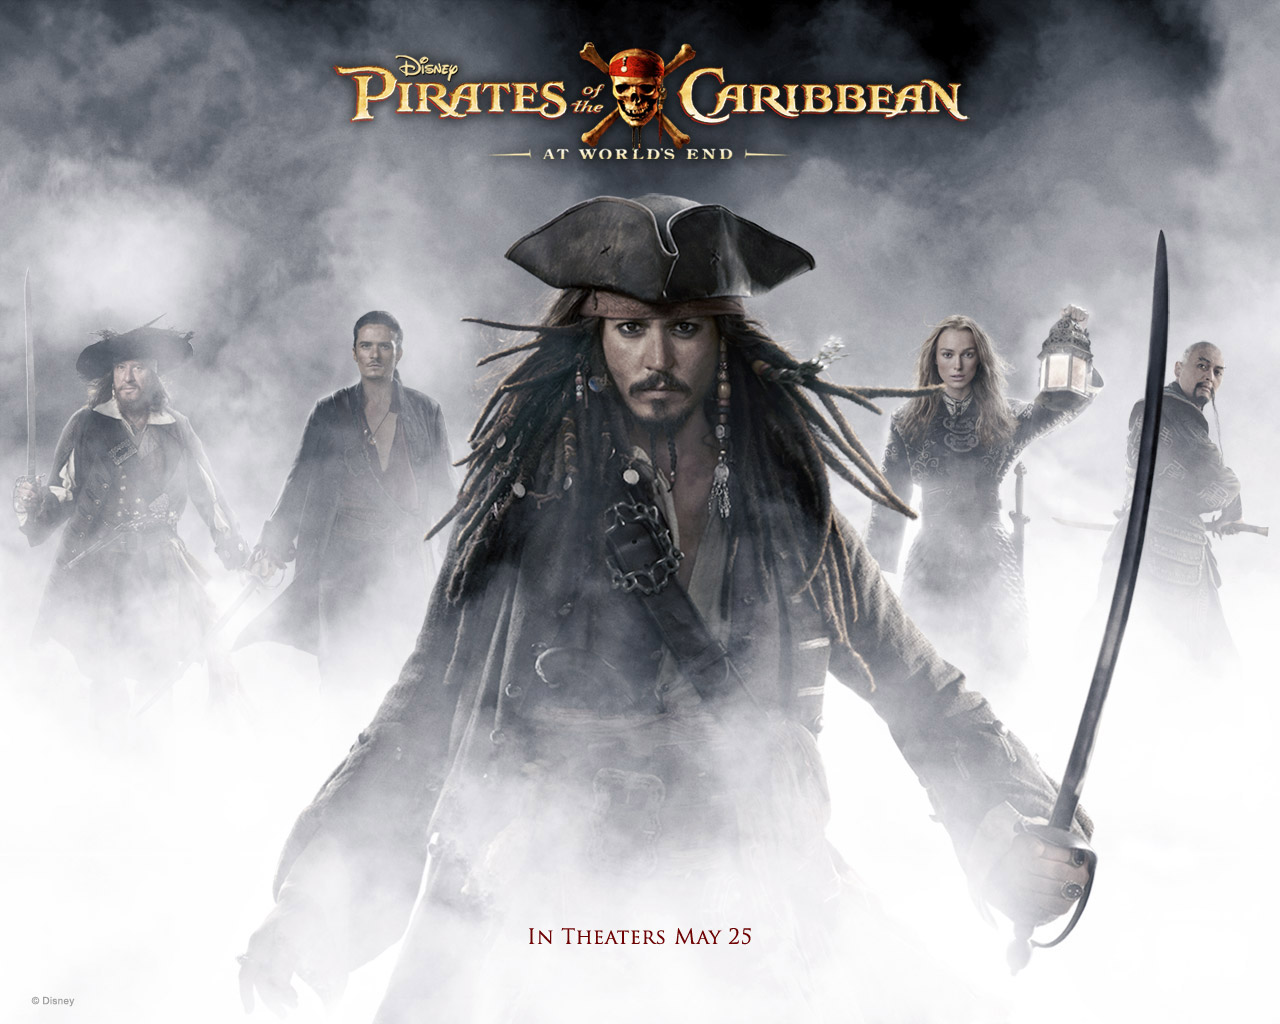 http://3.bp.blogspot.com/-4-hWSVXKRx8/TiFFdD_zWlI/AAAAAAAAABM/-2R3wKsI9a8/s1600/Johnny_Depp_in_Pirates_of_the_Caribbean%2B_At_Worlds_End_Wallpaper_1_800.jpg